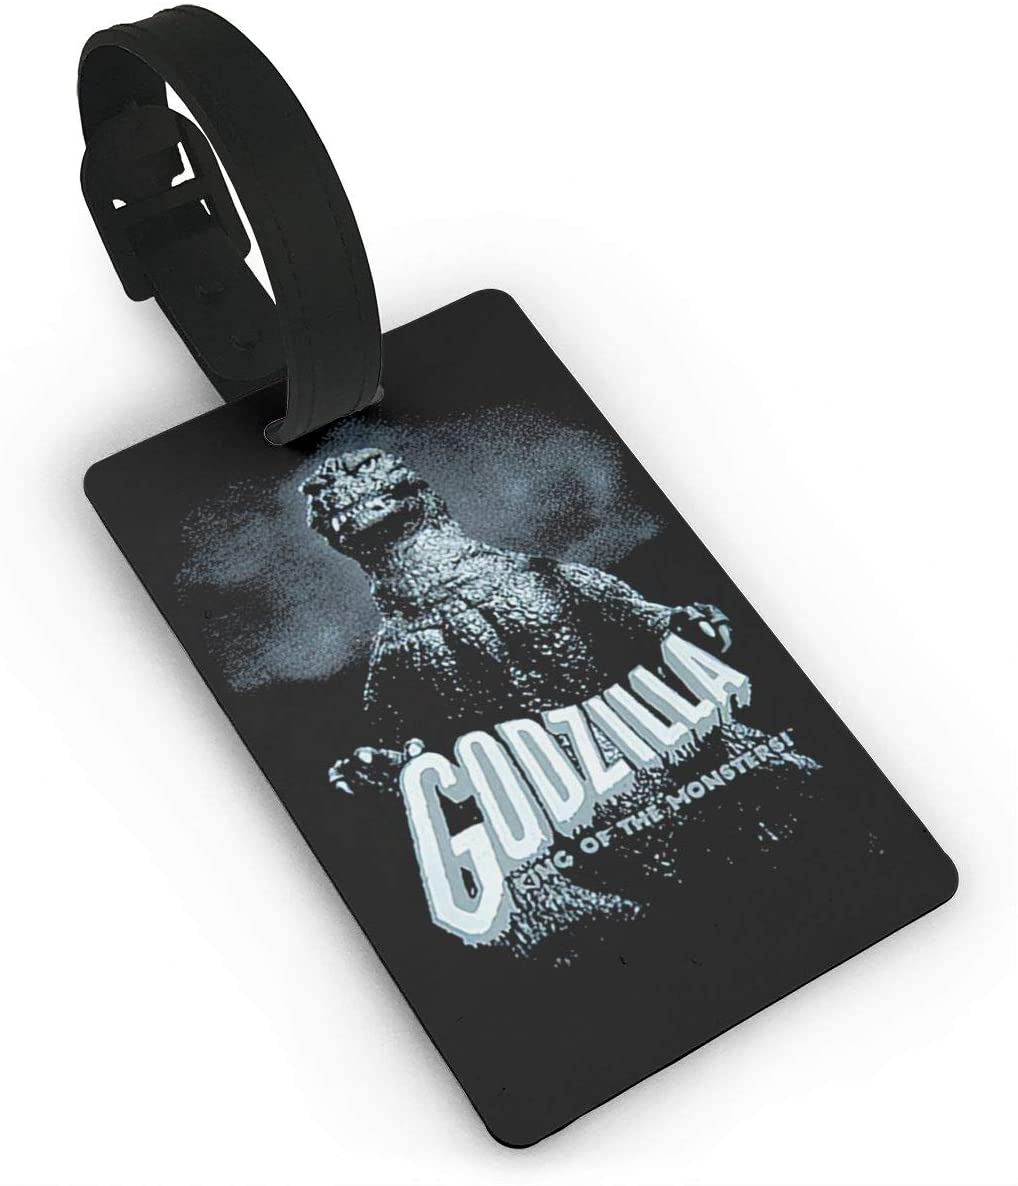 Godzilla Suitcase Luggage Tags, Pvc Luggage Tags, Used For Suitcases, Luggage Bags, Gym Bags, Tool Boxes